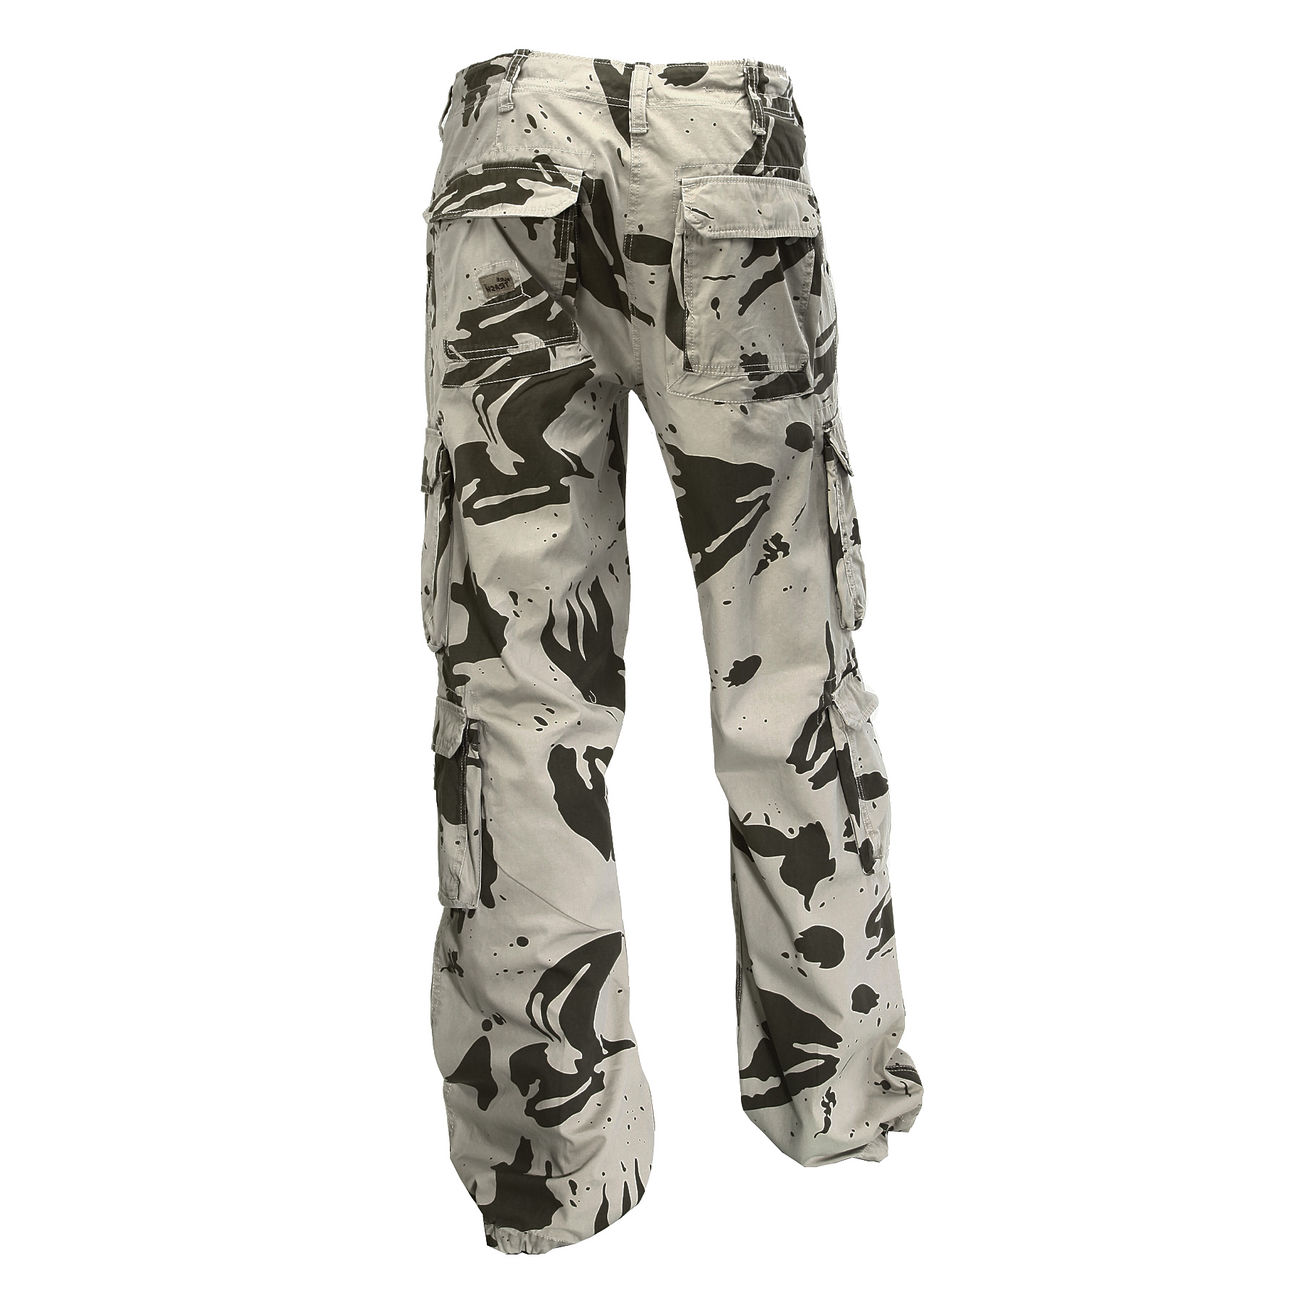 Pure Trash Hose Defense sand camo 3